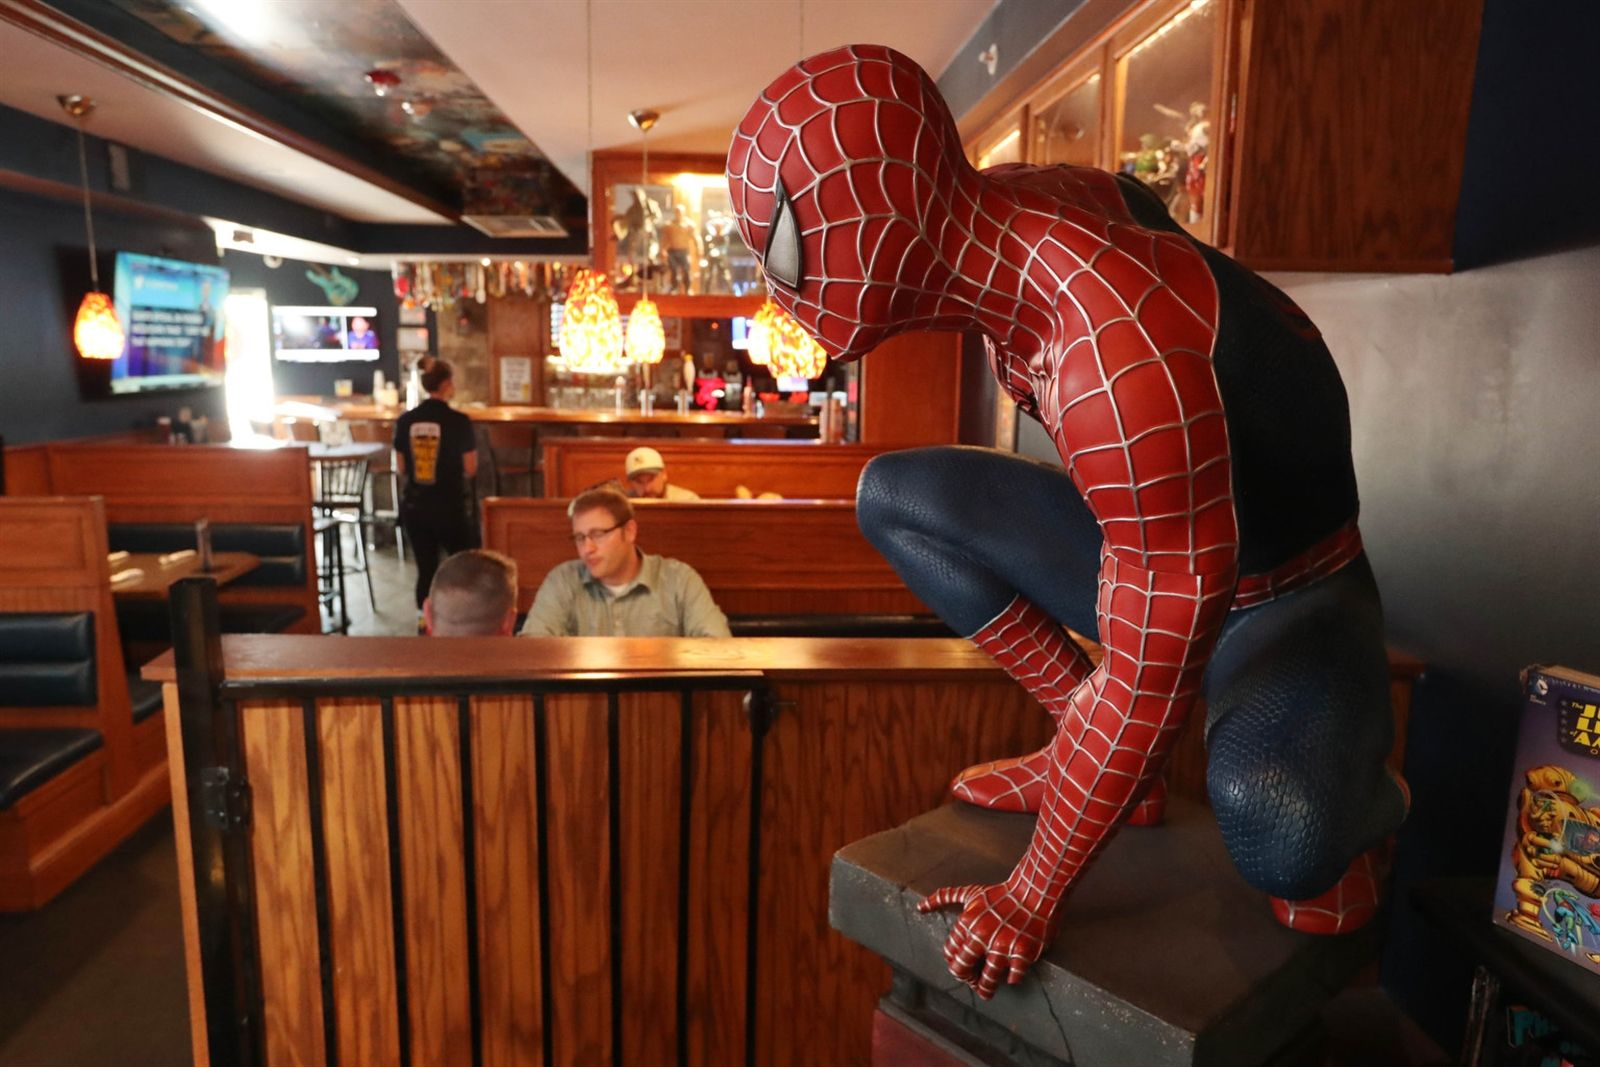 A life-size Spider-Man statue is crouched and ready as diners have lunch.